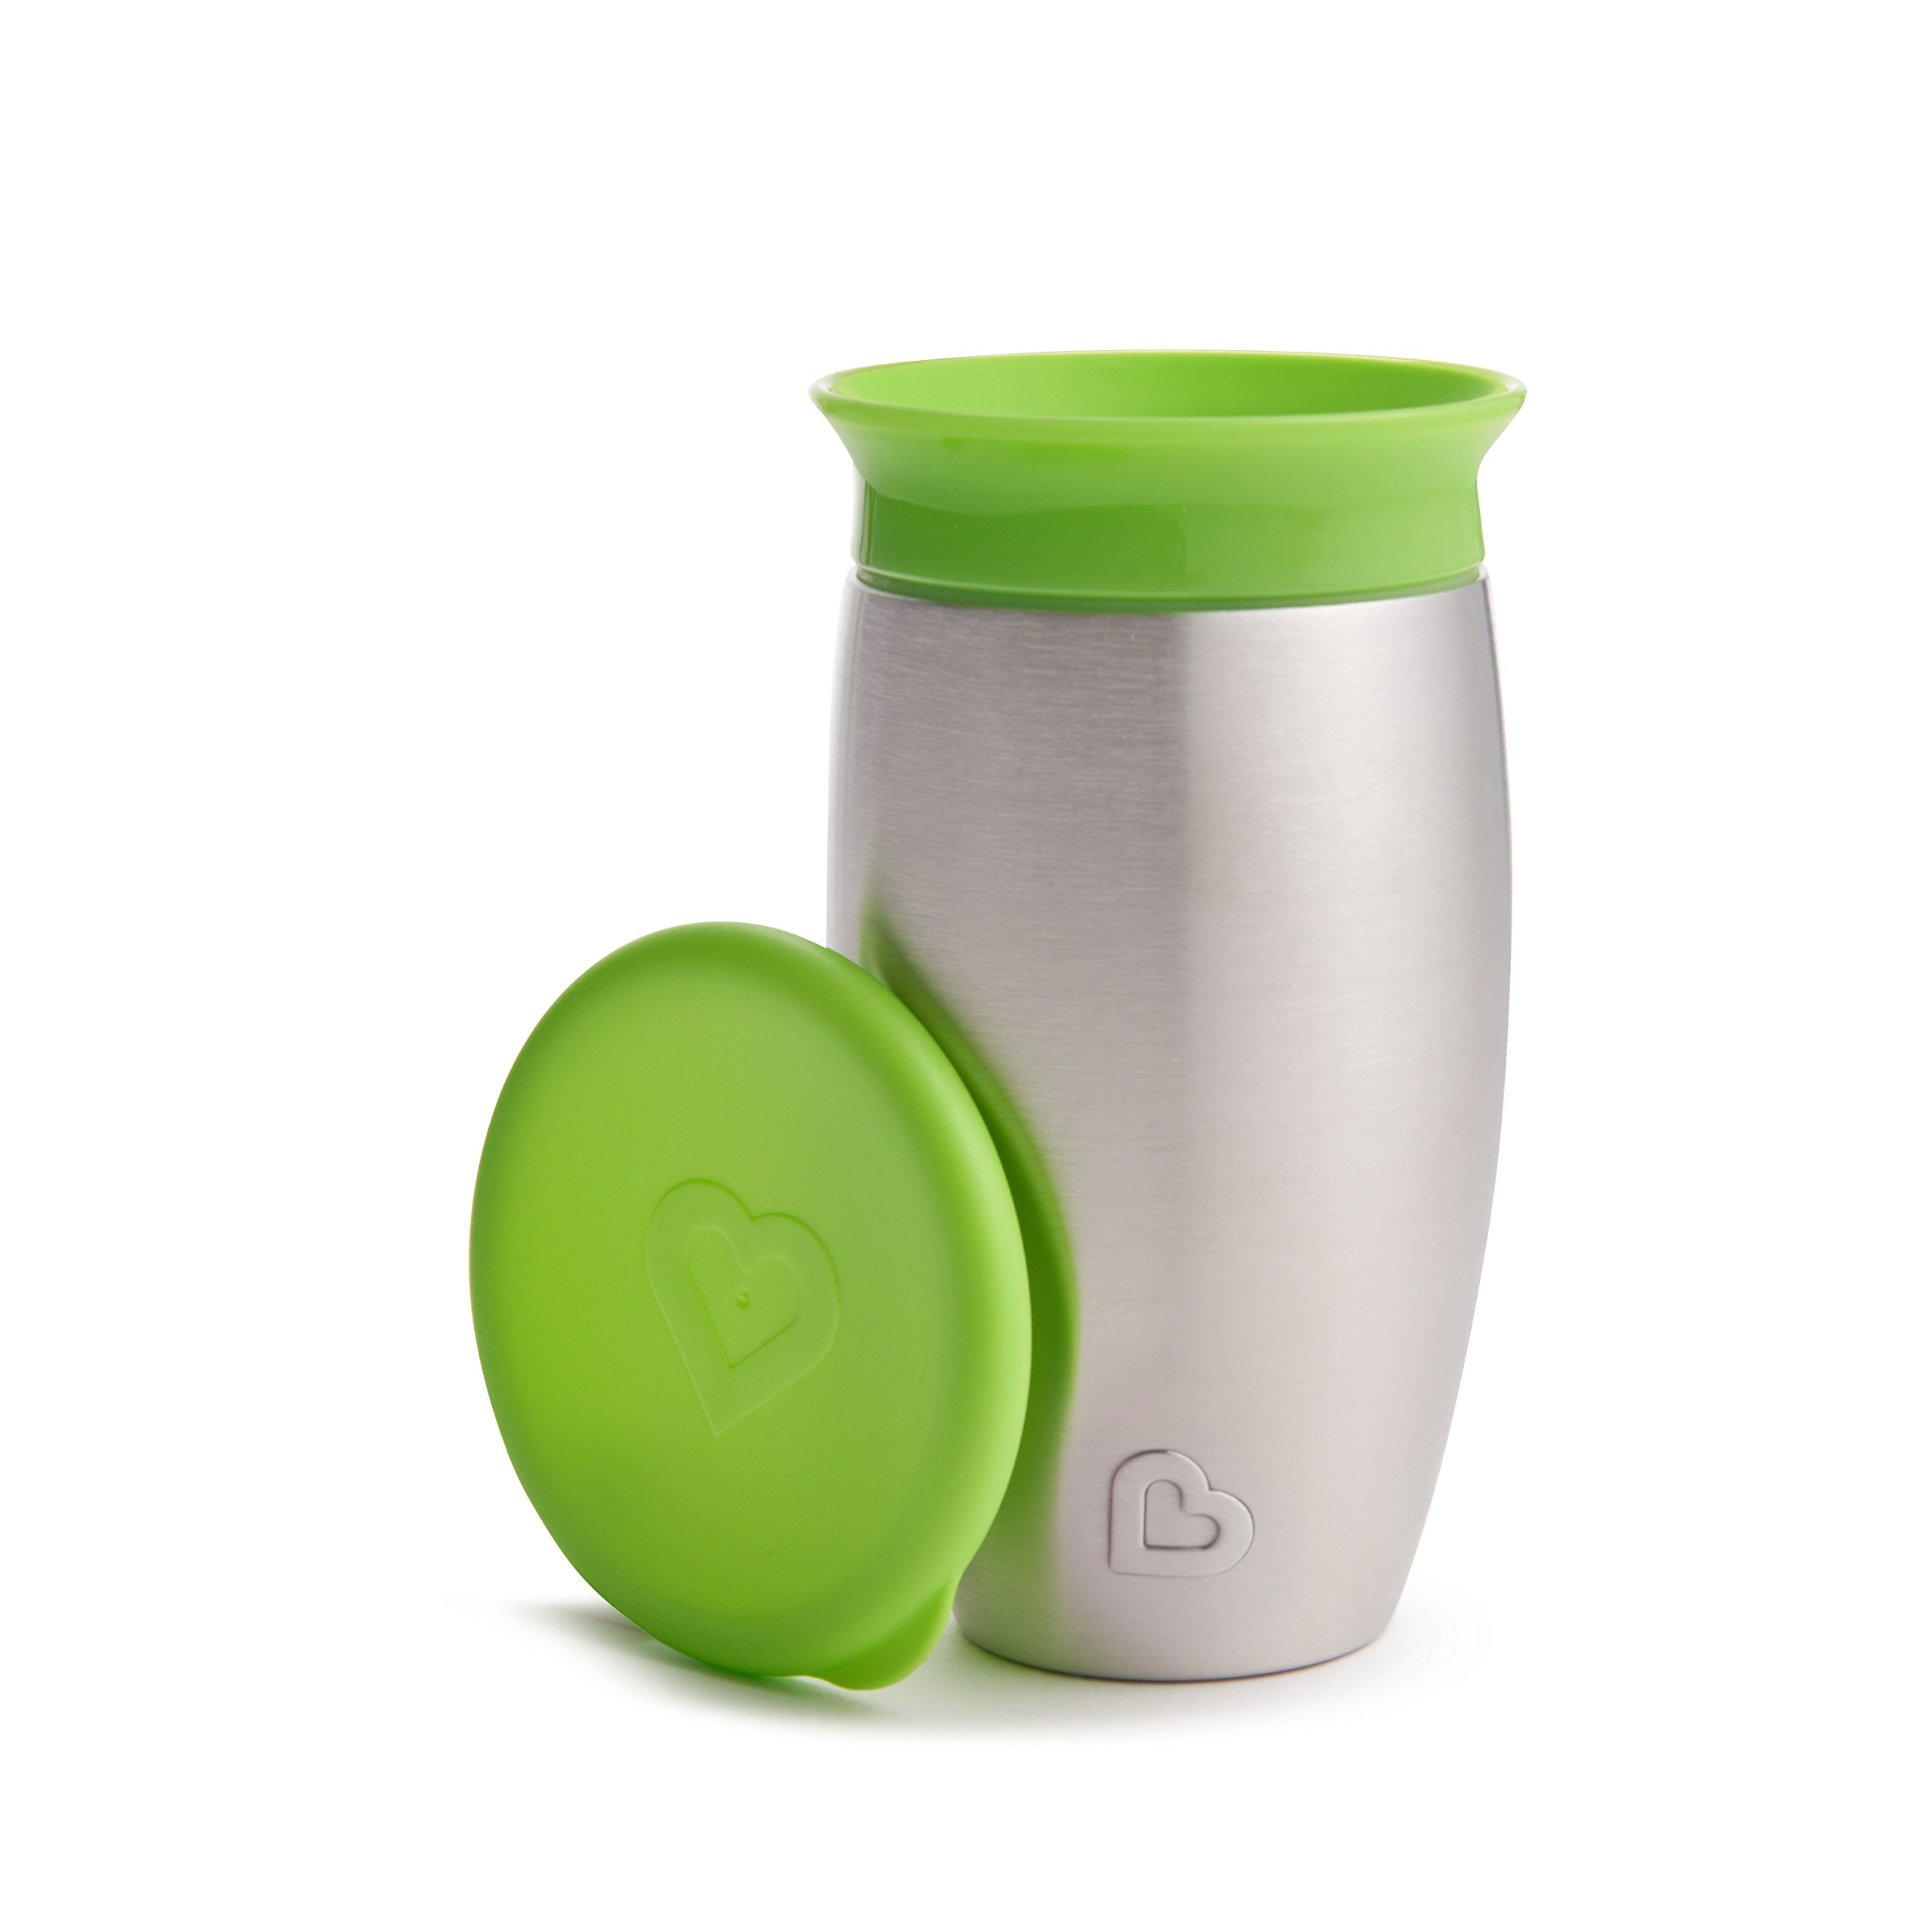 Munchkin Miracle Stainless Steel 360 Sippy Cup, Green, 10 Ounce by Munchkin